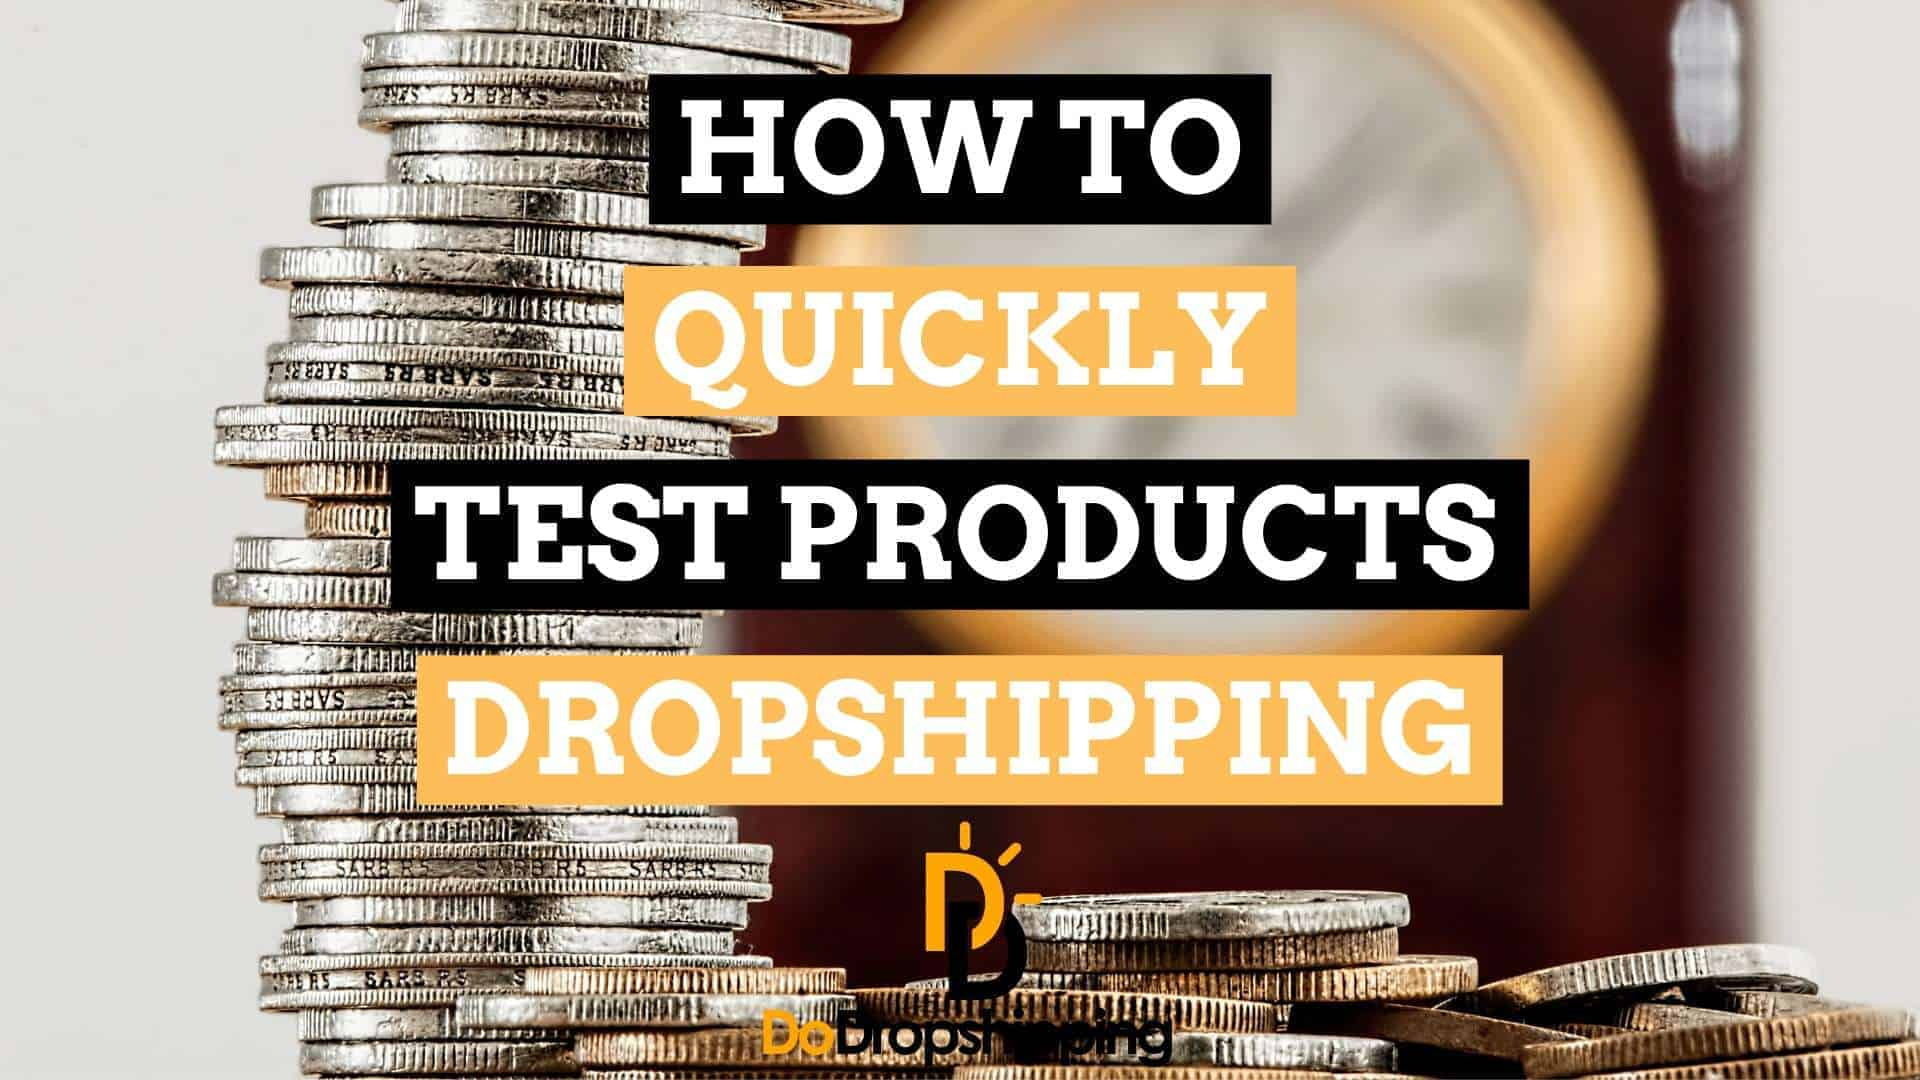 How To Quickly Test Products With Dropshipping (Save Money)